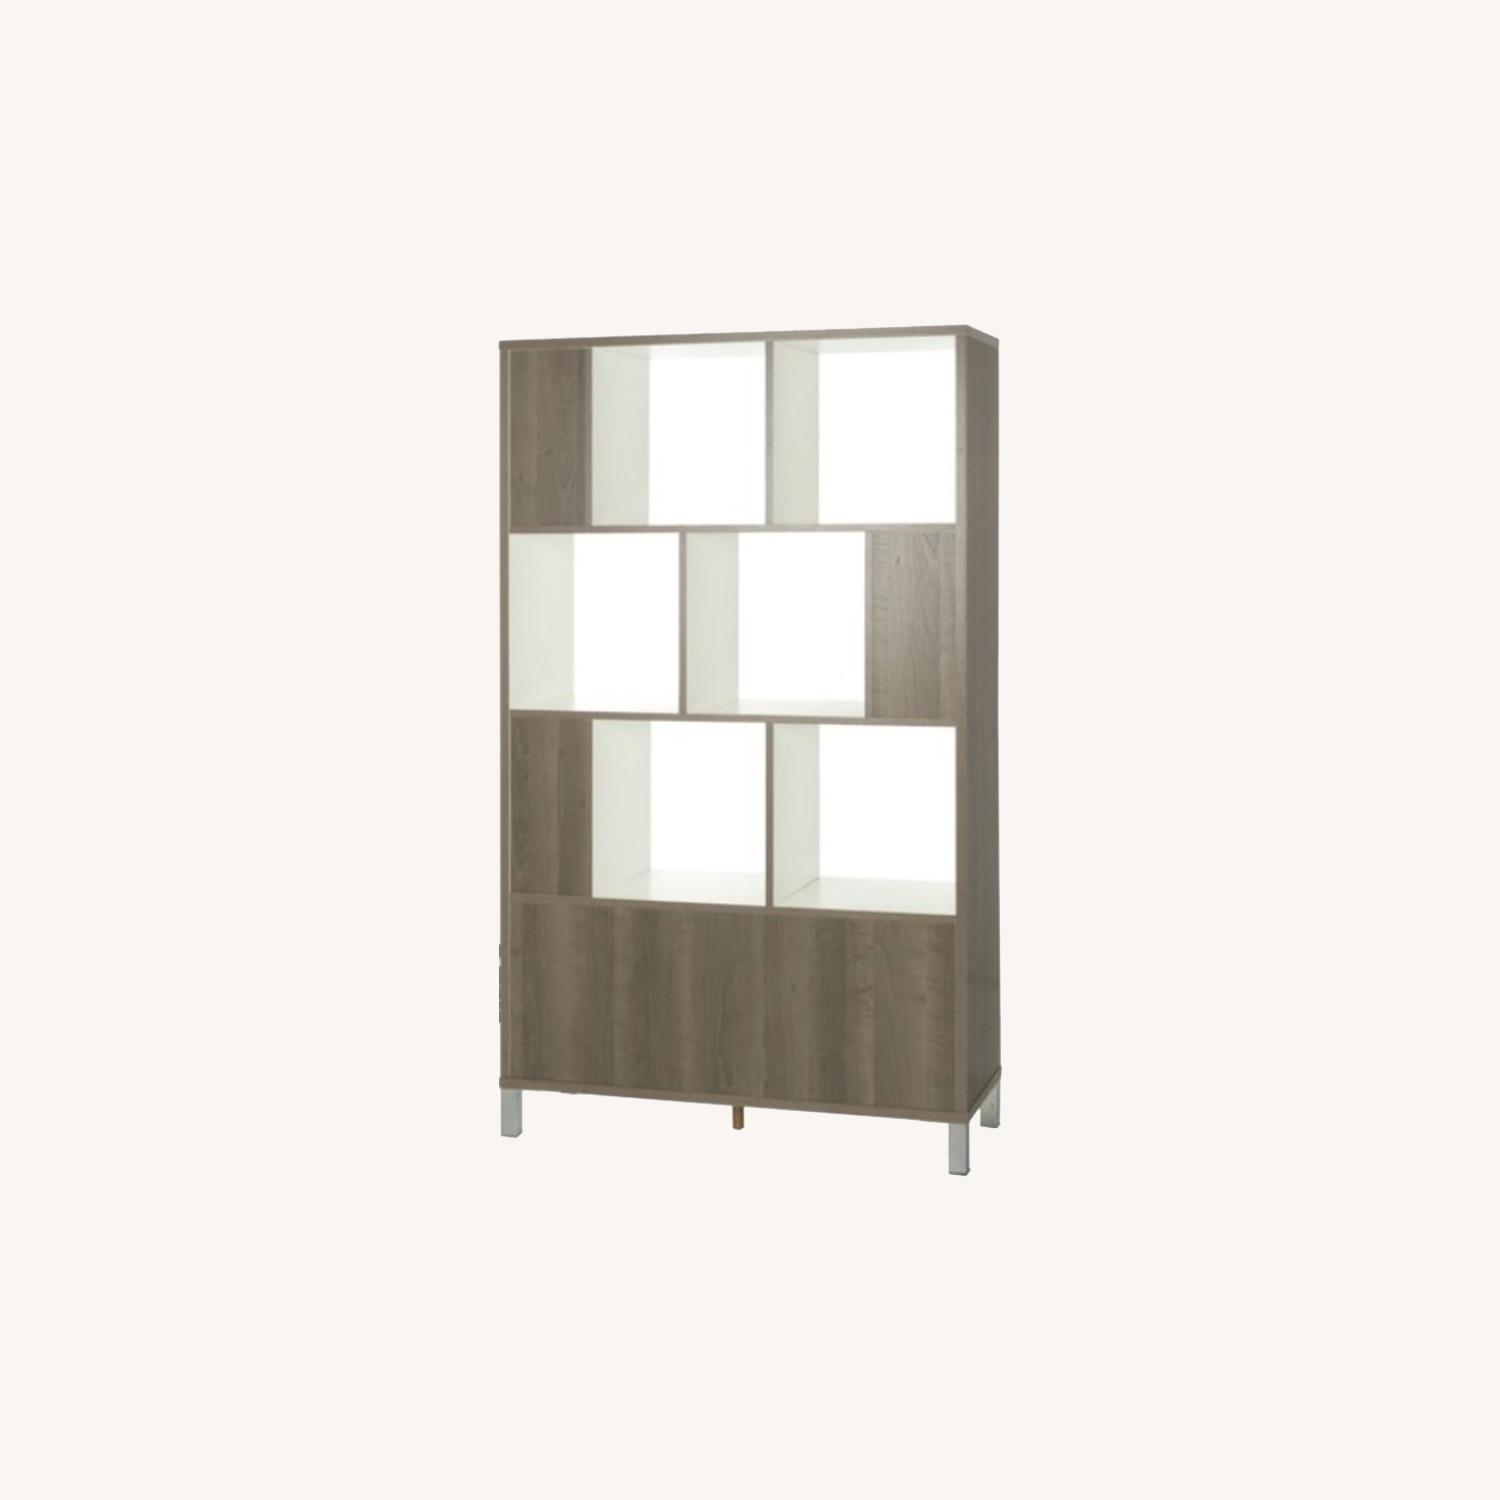 South Shore Expoz 9-Cube Shelving Unit With Doors - image-0